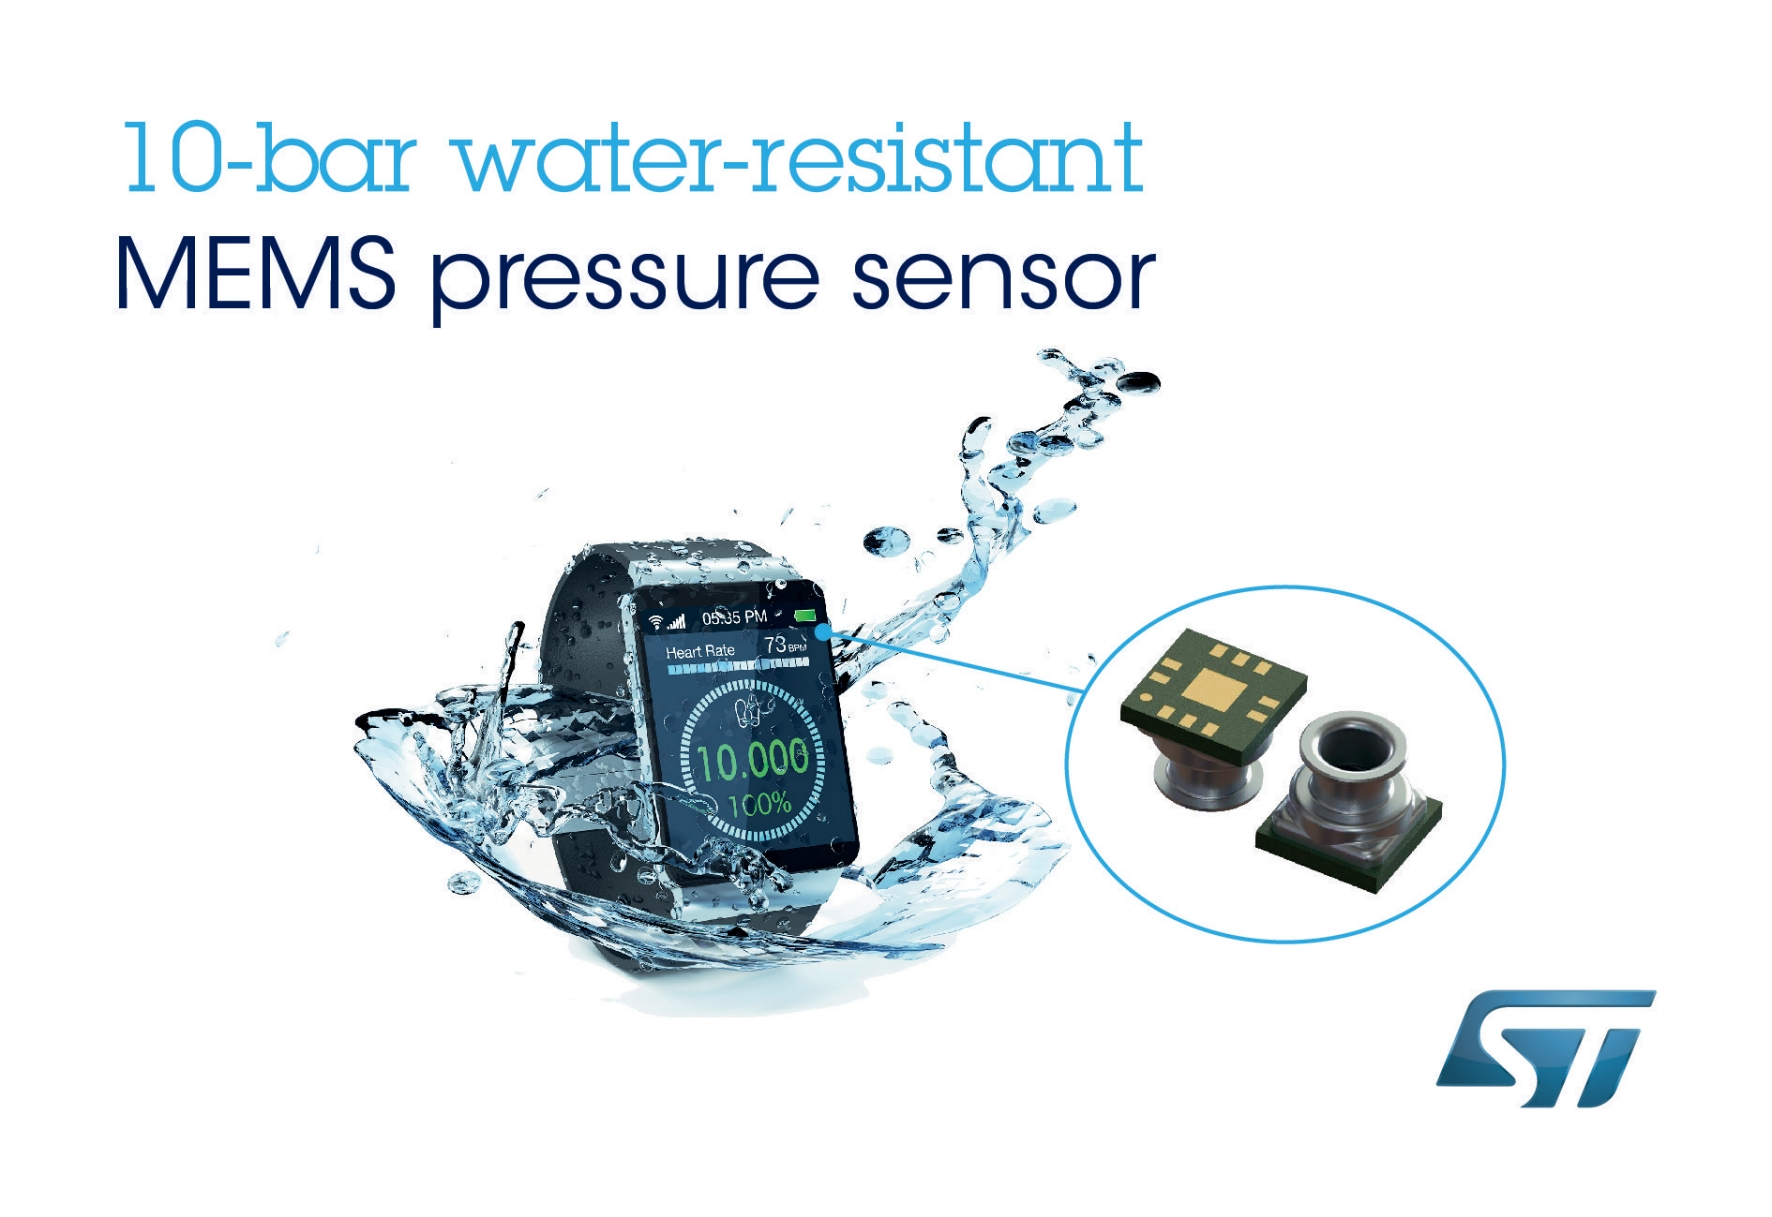 Stmicroelectronics announces class leading water resistant